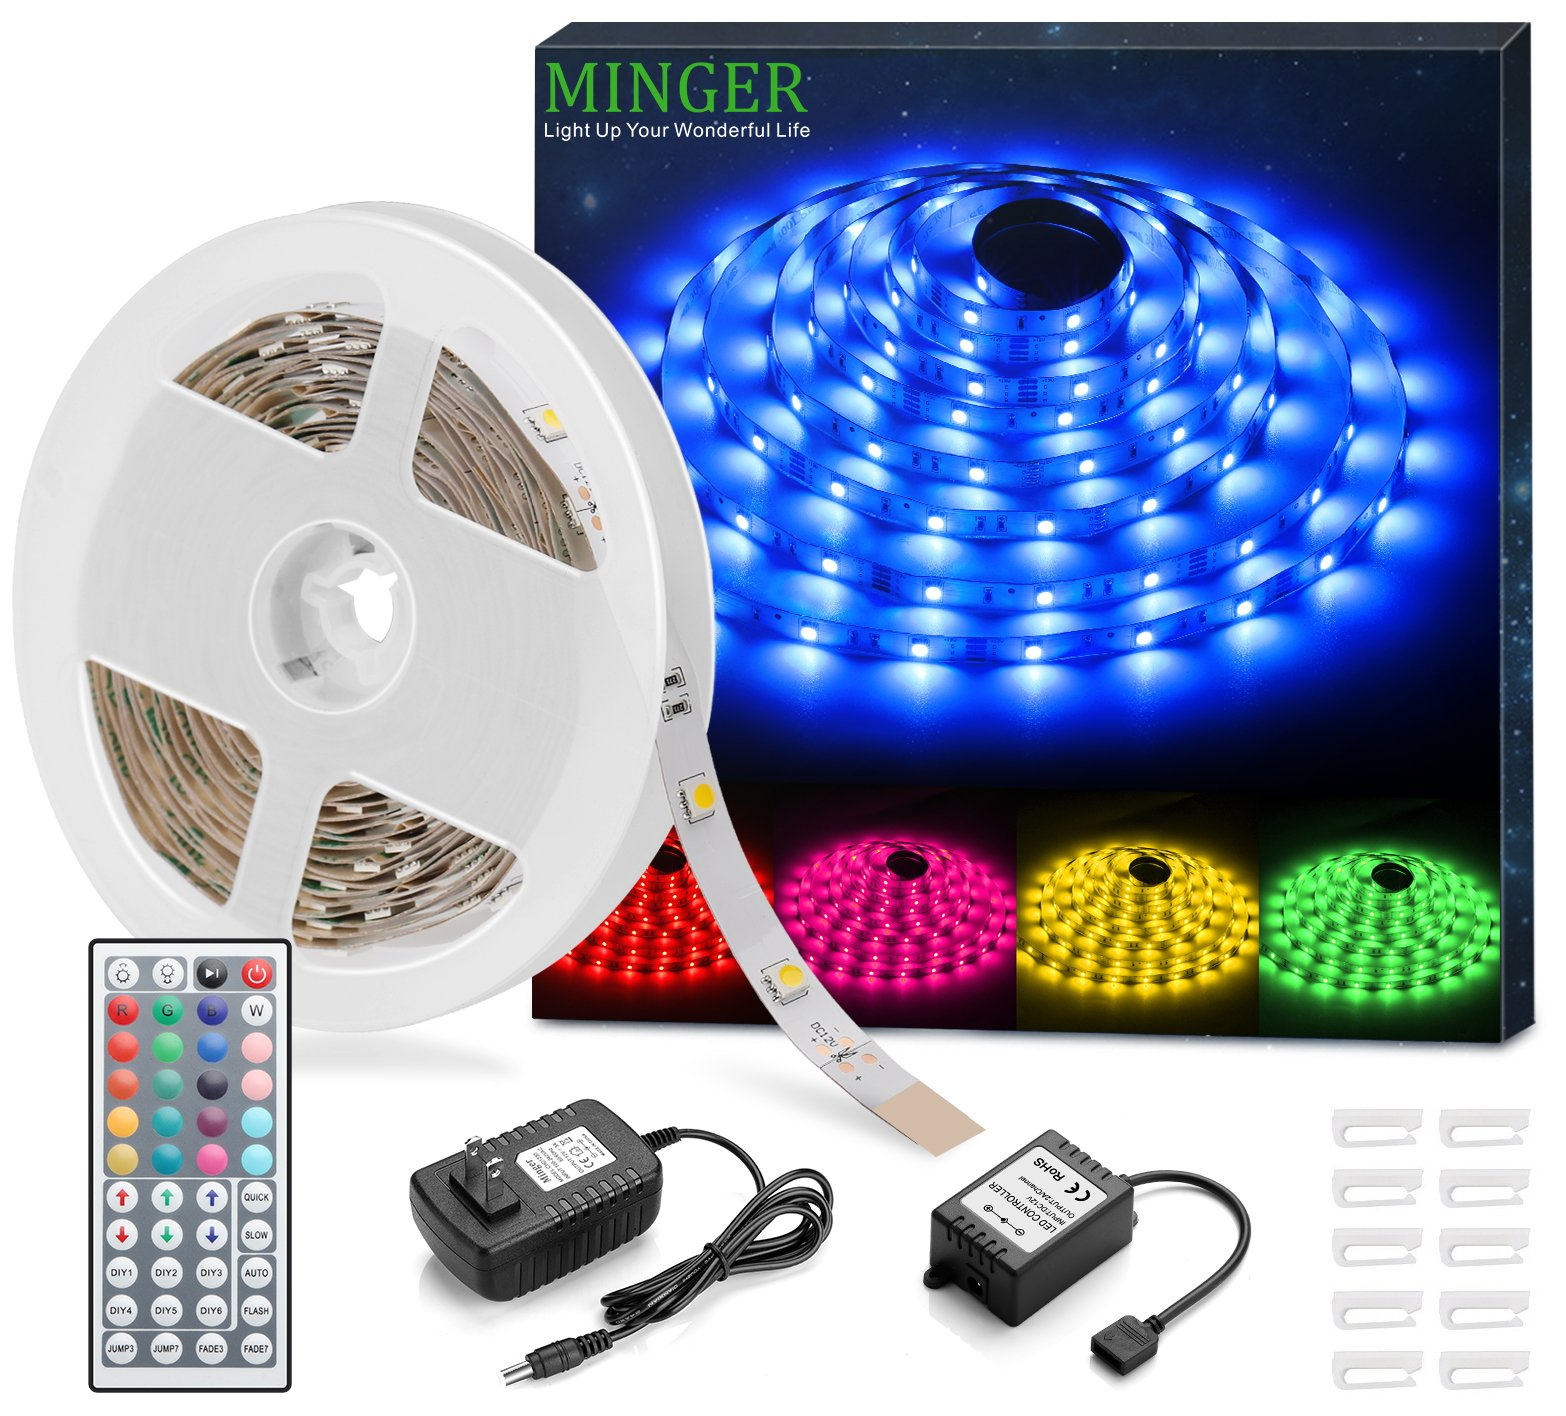 MINGER RGB LED Strip Lights, Non-waterproof 16.4ft SMD 5050 Rope Lighting Color Changing with RF Remote Controller & 12V Power Supply, Flexible LED Tape Lighting Strips for Home Kitchen Decoration by MINGER